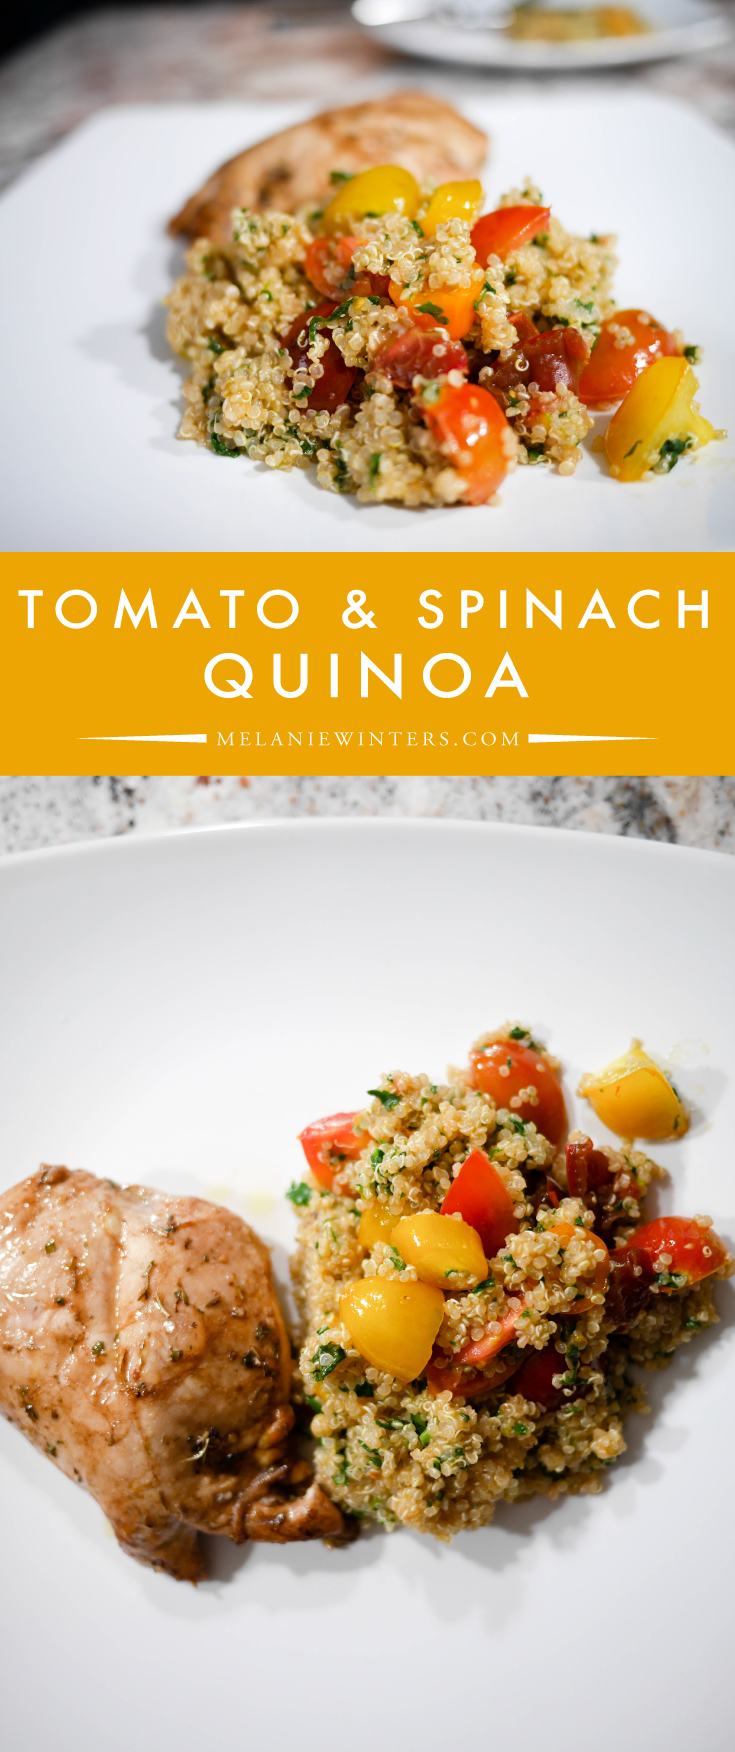 Ready in 20 minutes, just a few ingredients take your quinoa to next level deliciousness.